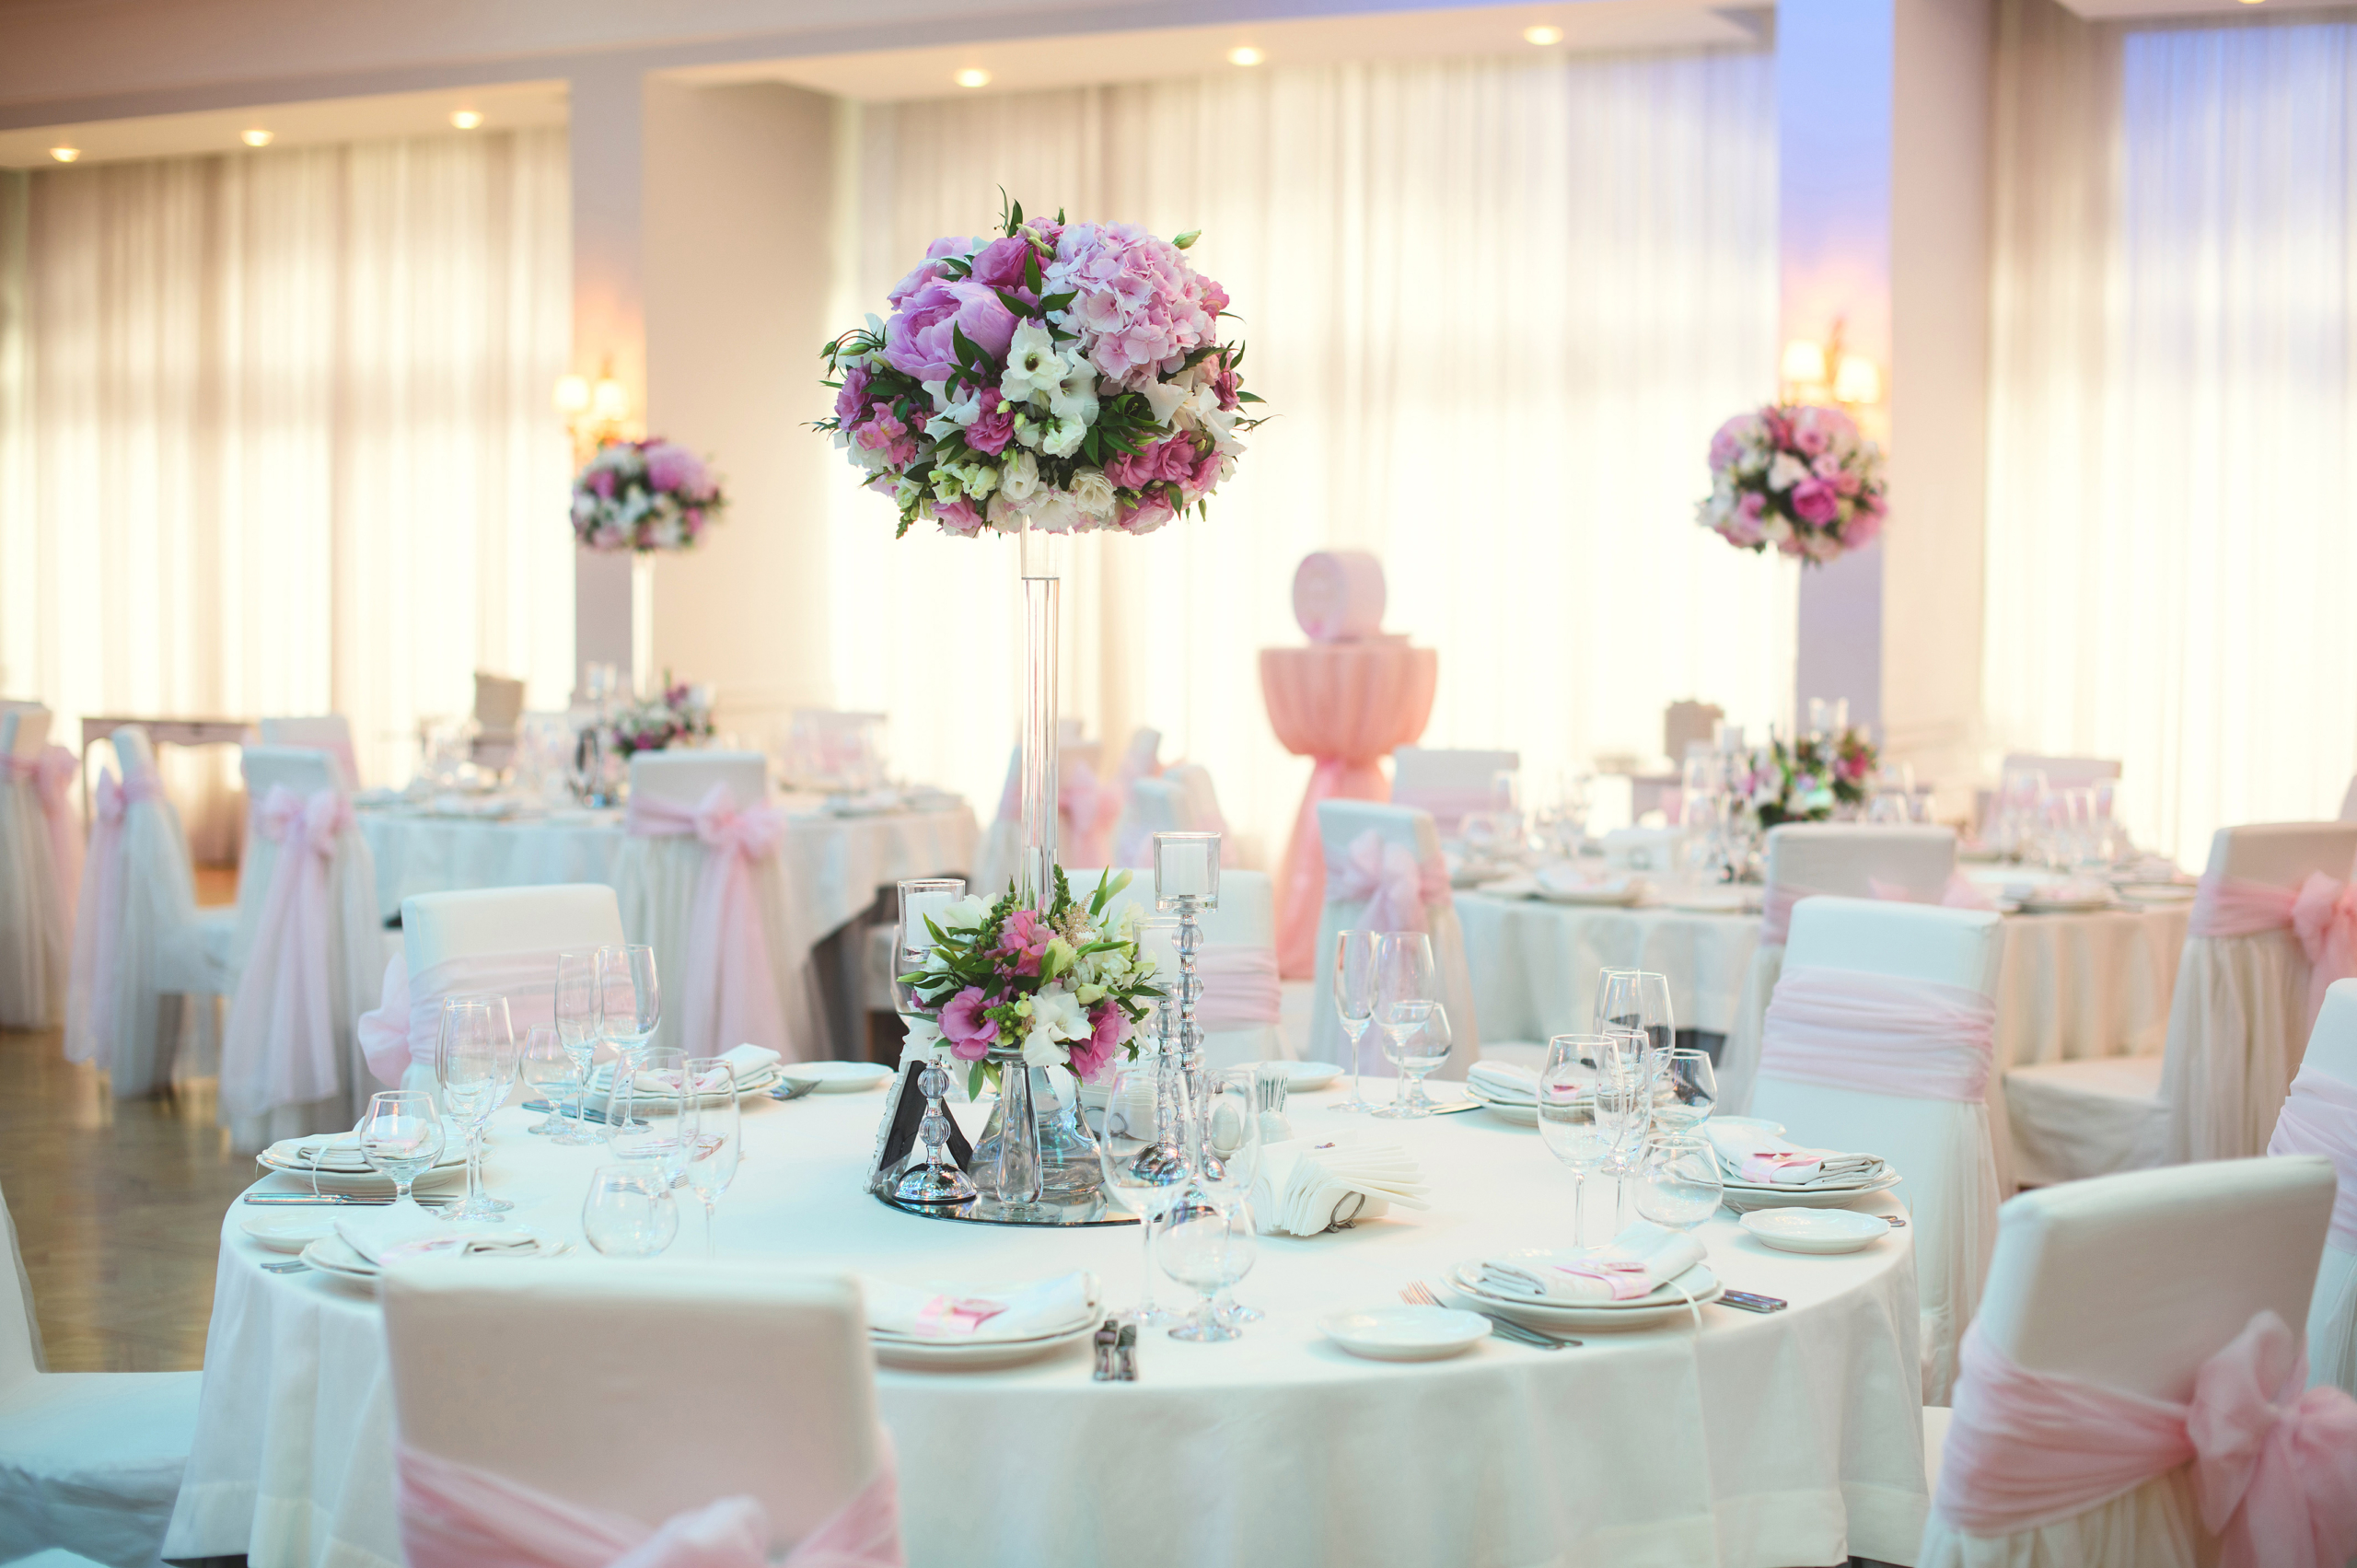 Restaurant Decorated with pink Flowers bouquets